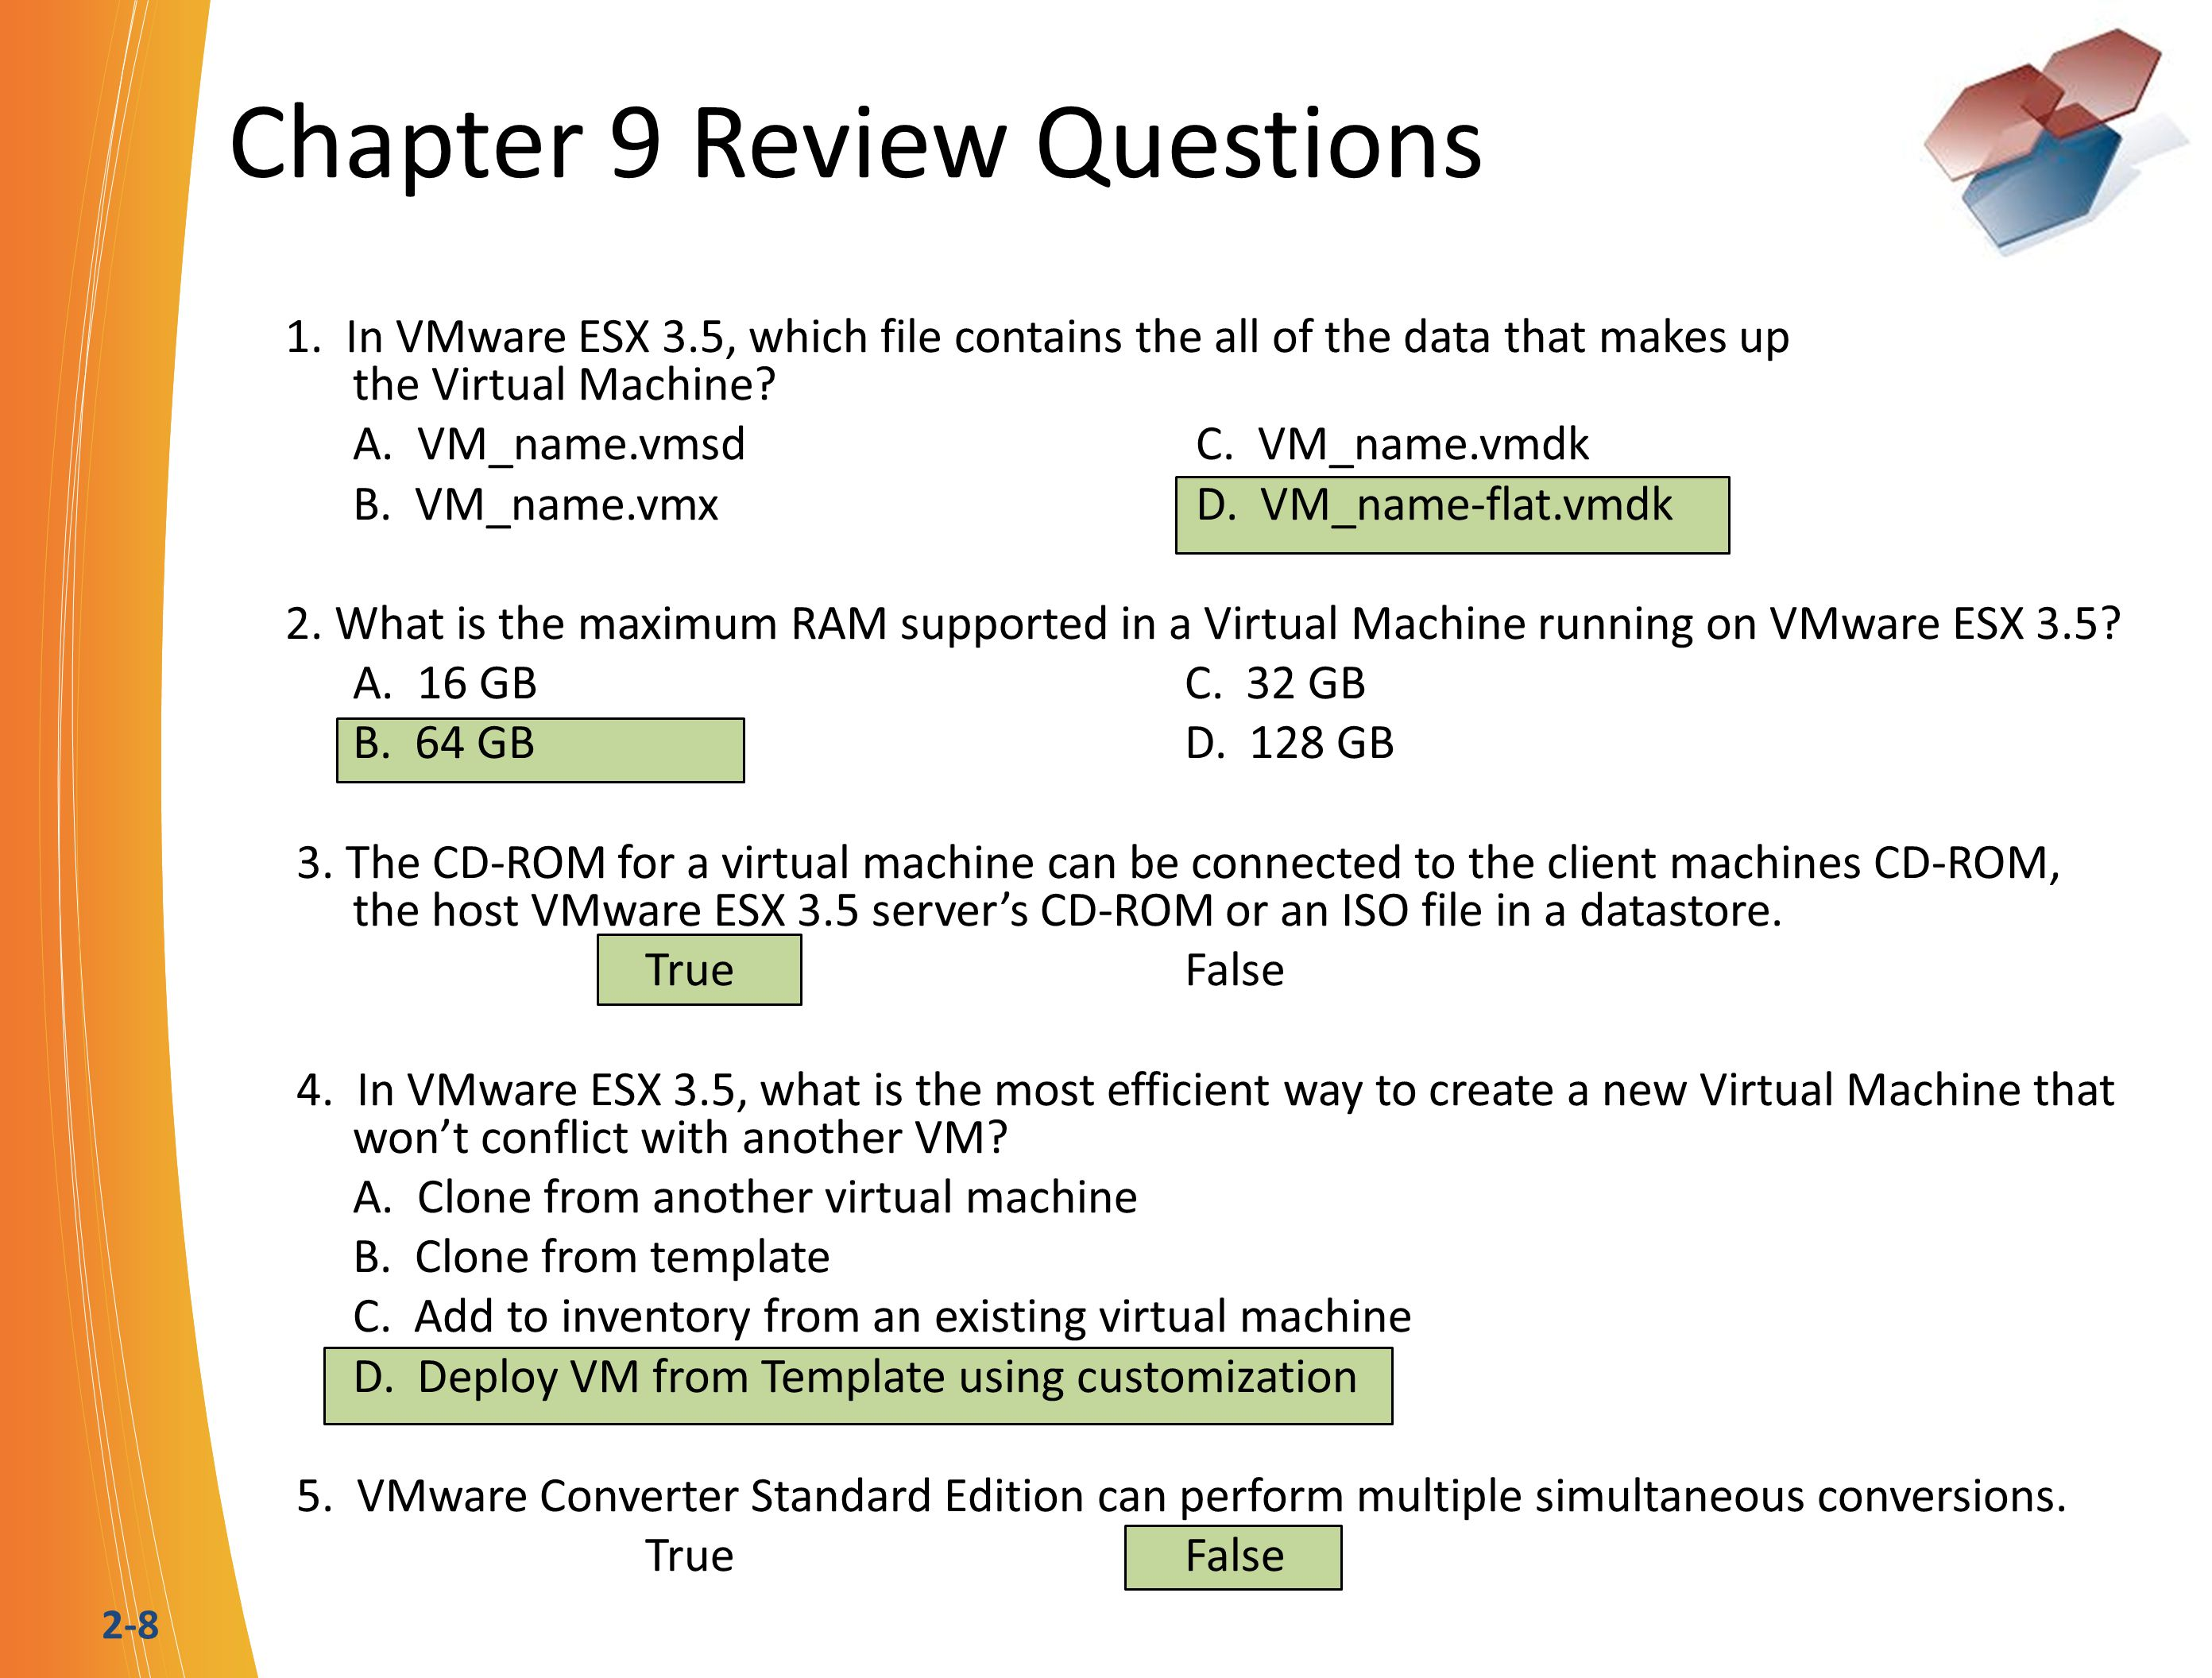 2-8 Chapter 9 Review Questions 1. In VMware ESX 3.5, which file contains the all of the data that makes up the Virtual Machine? A. VM_name.vmsd C. VM_